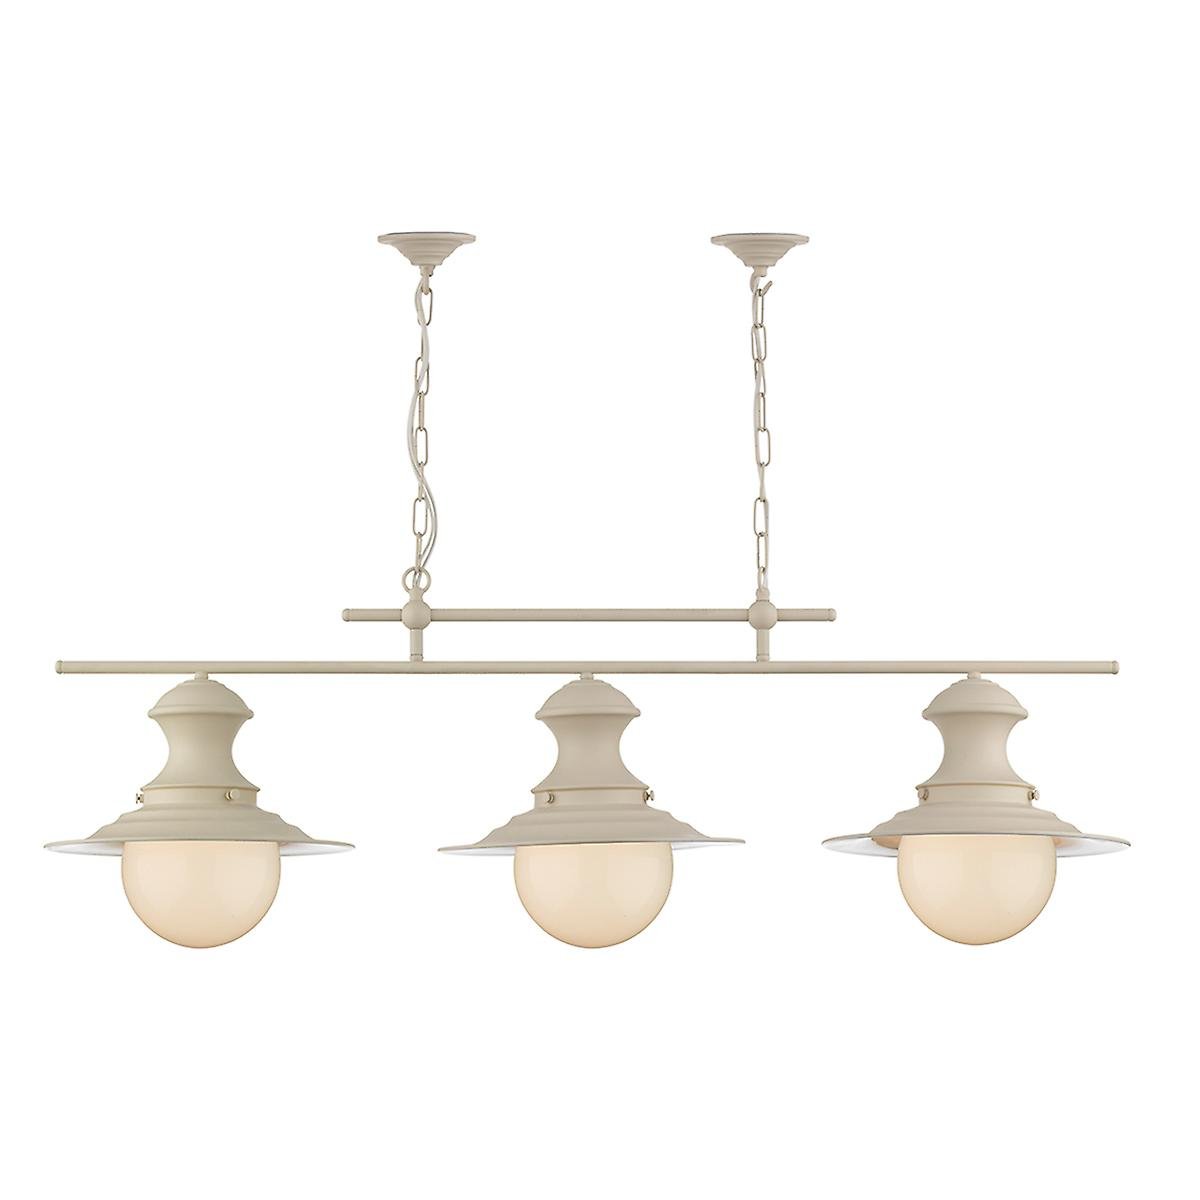 David Hunt EP0333 Station 3 Small Lamp Bar Pendant In Cotswold Cream